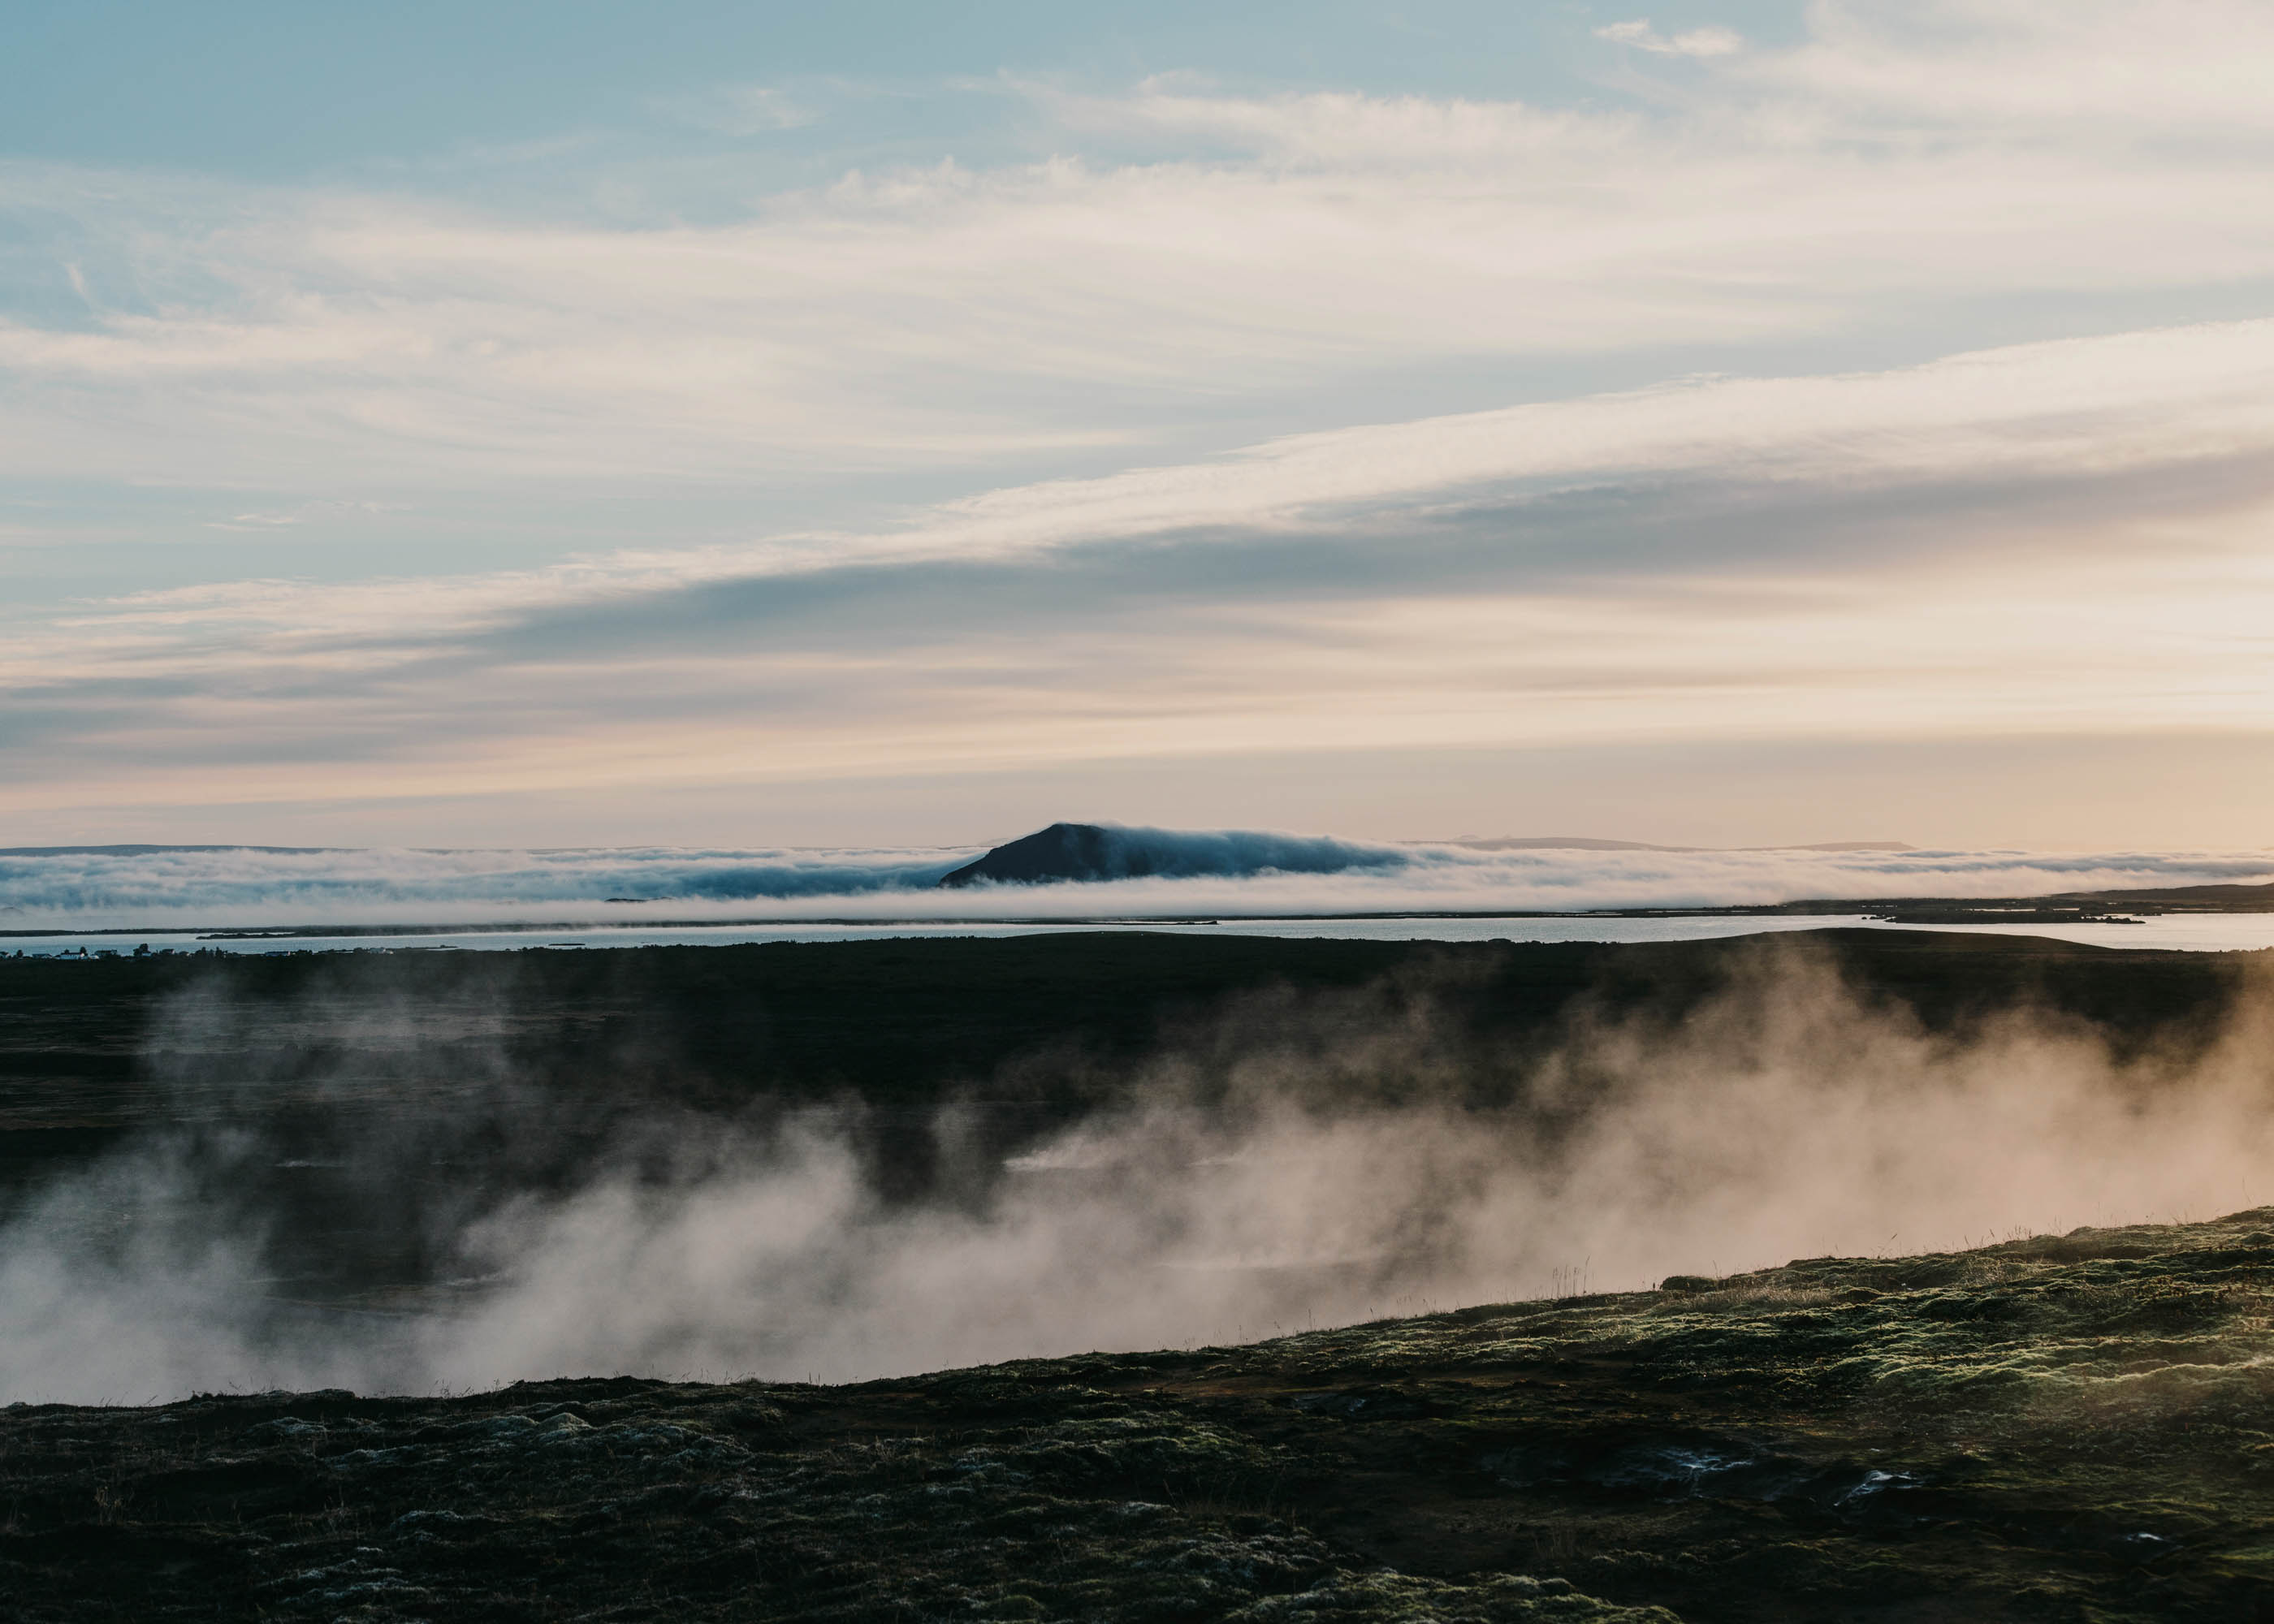 #personal #iceland #myvatn #mountains #landscapes